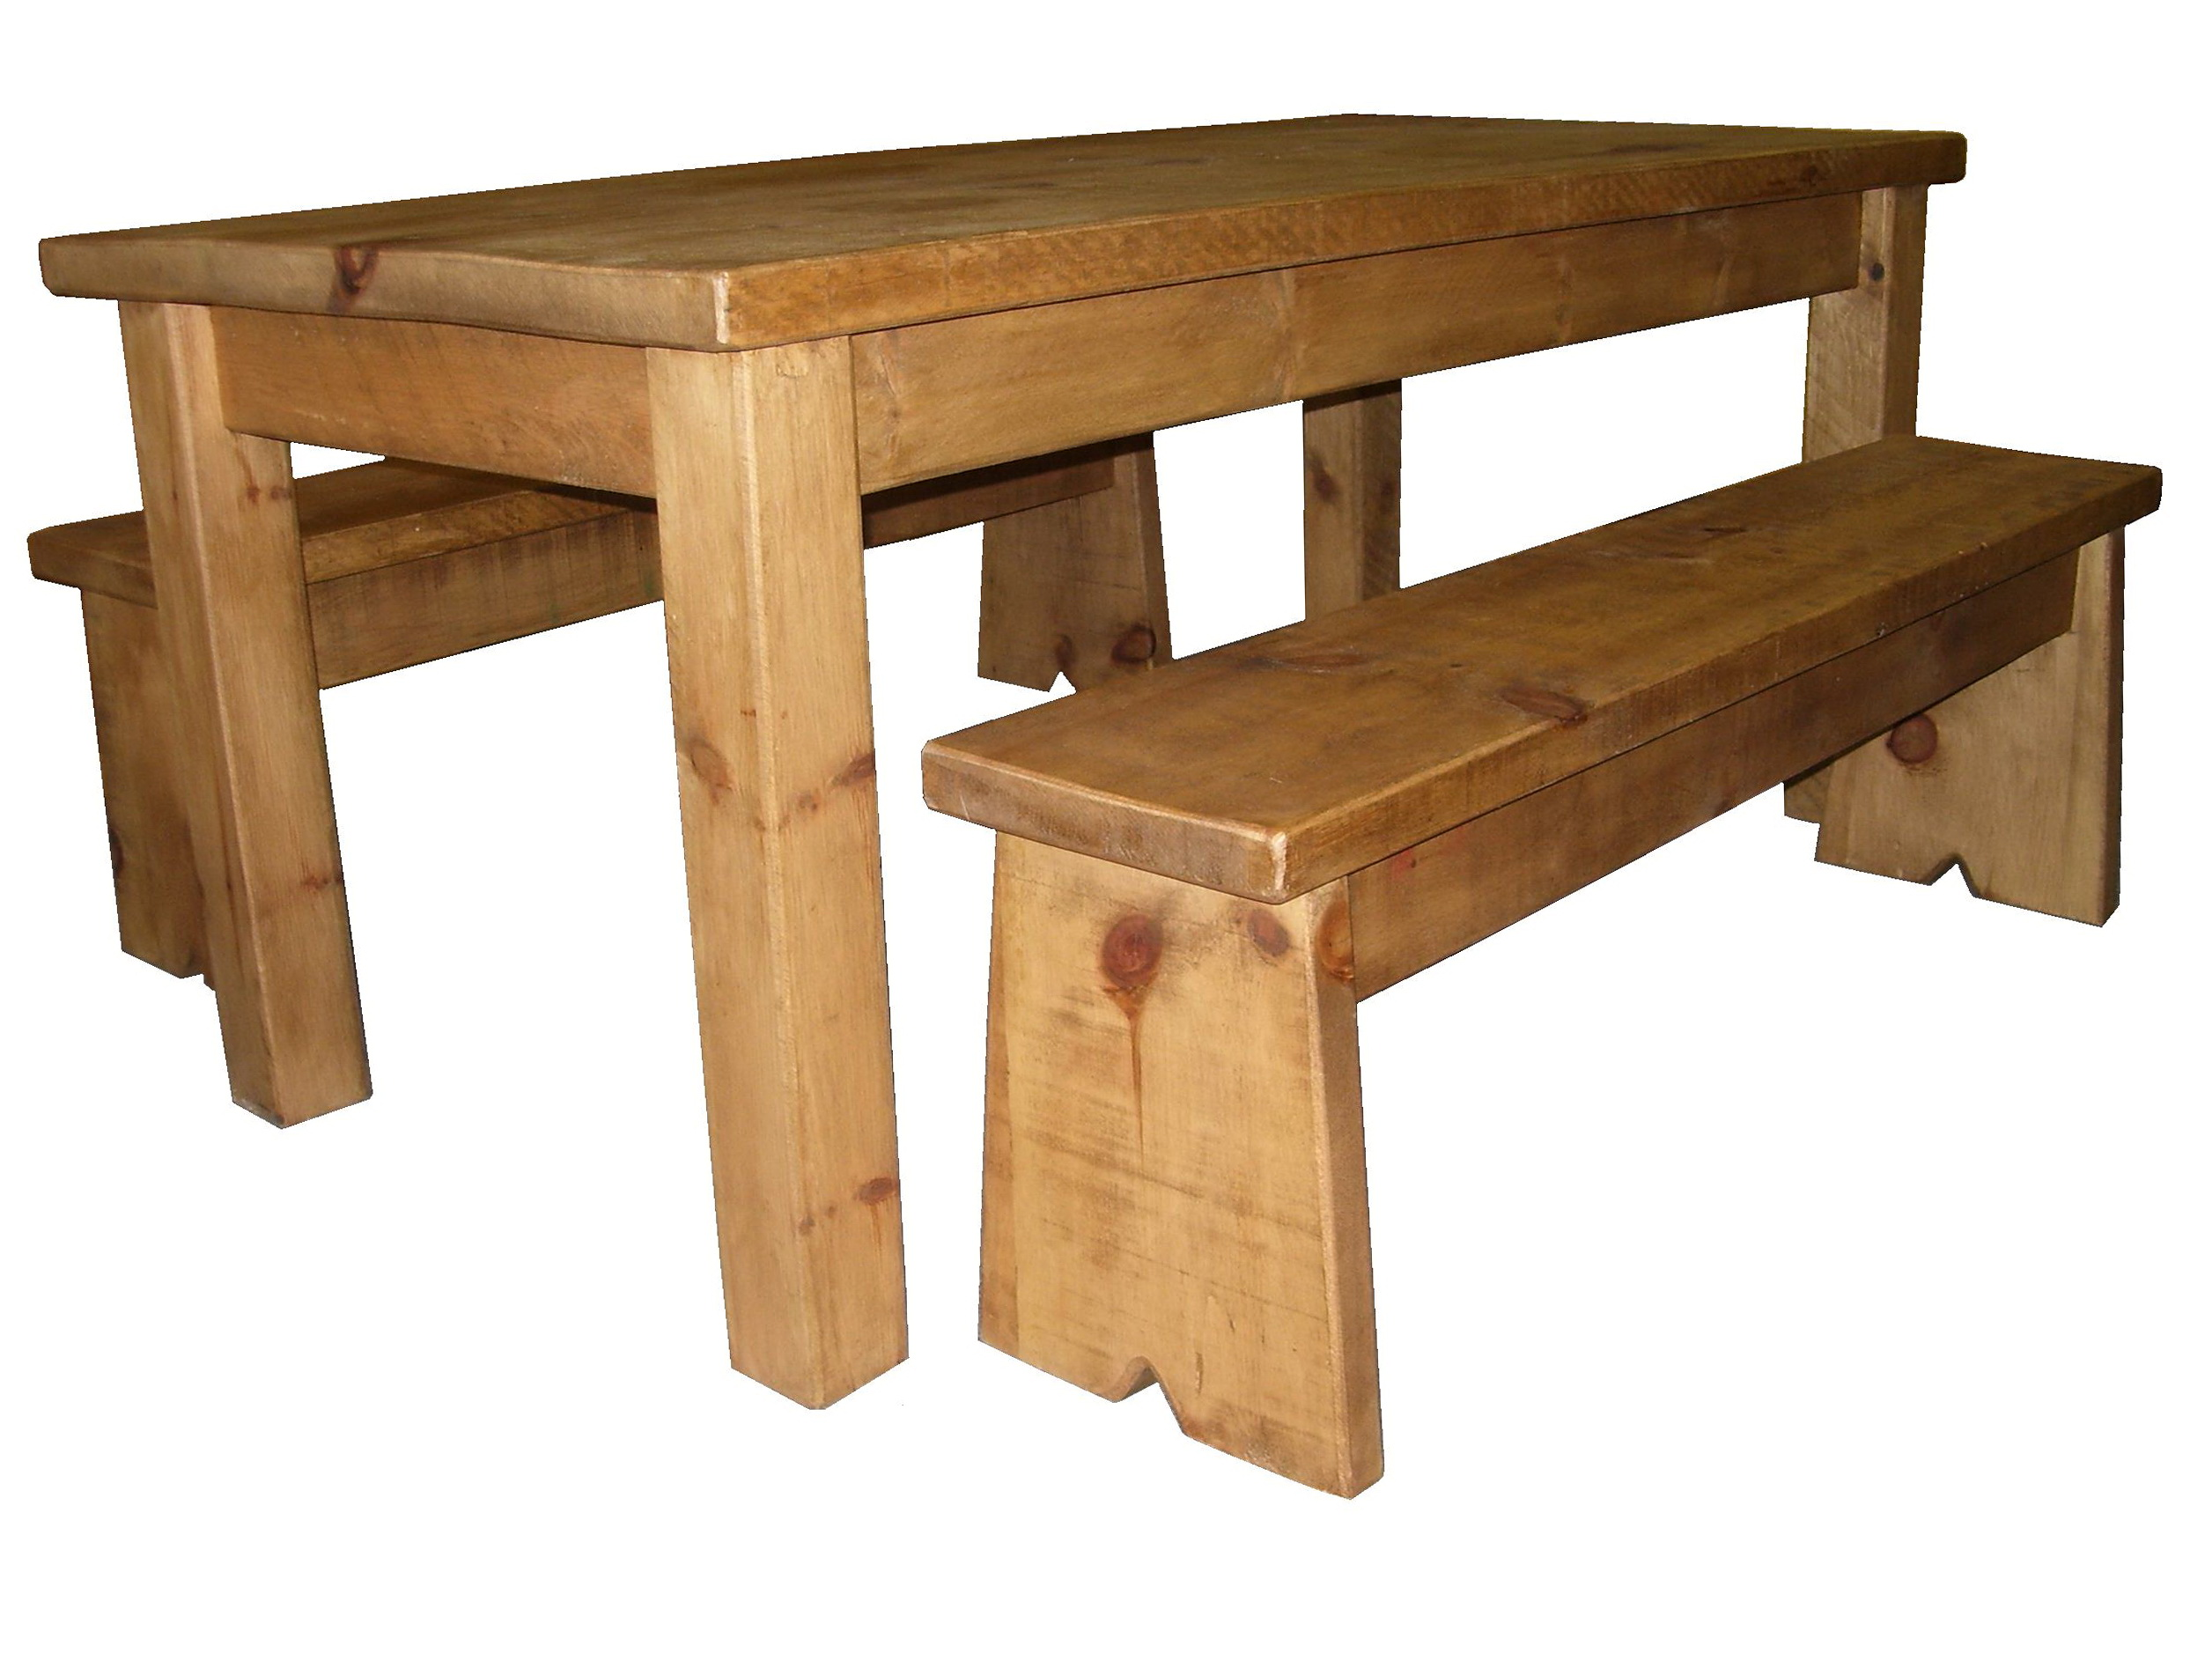 Rustic kitchen table with bench home design ideas for Rustic benches for kitchen table